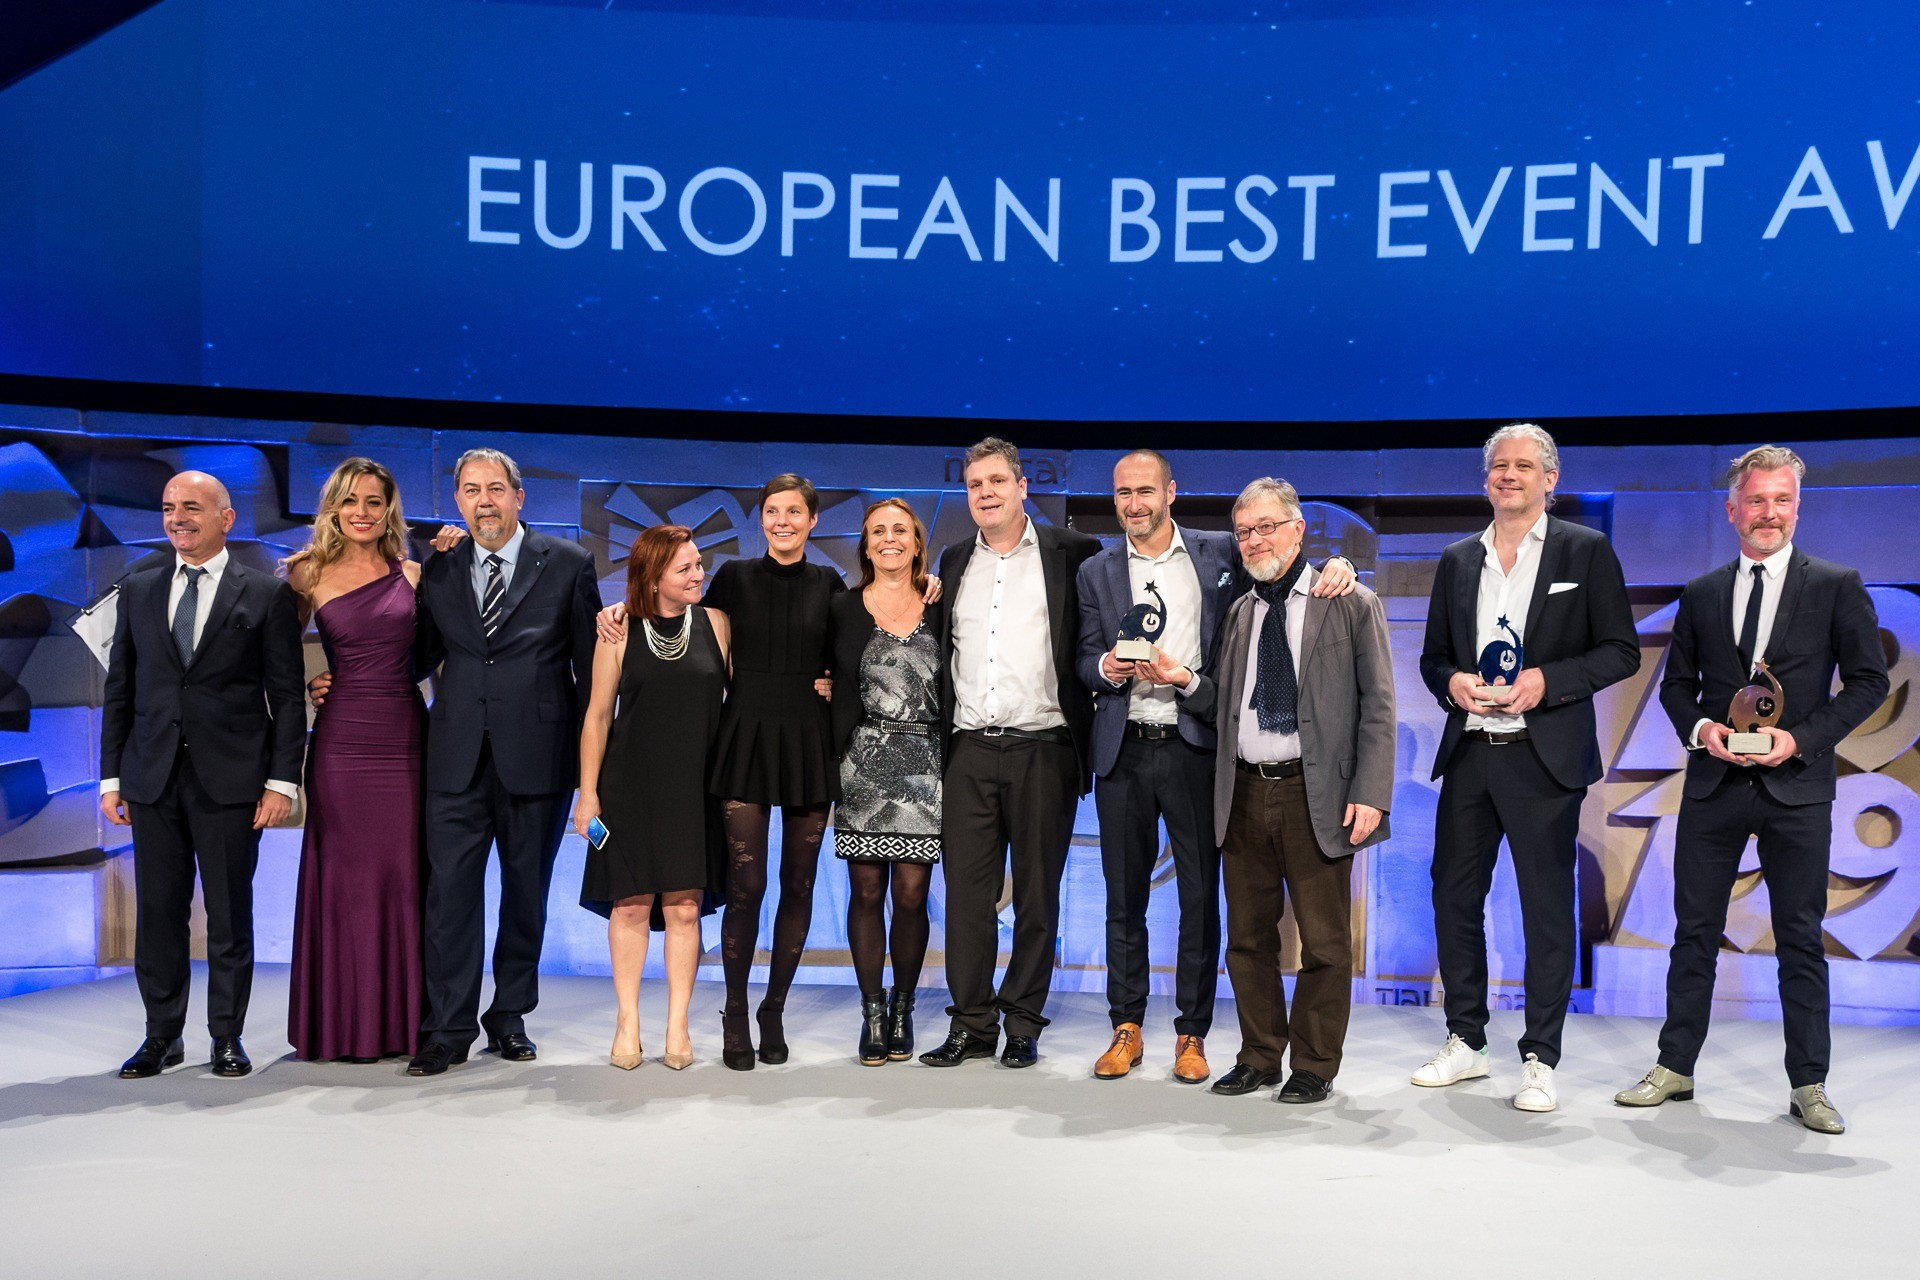 Discover the winners of the European Best Event Award